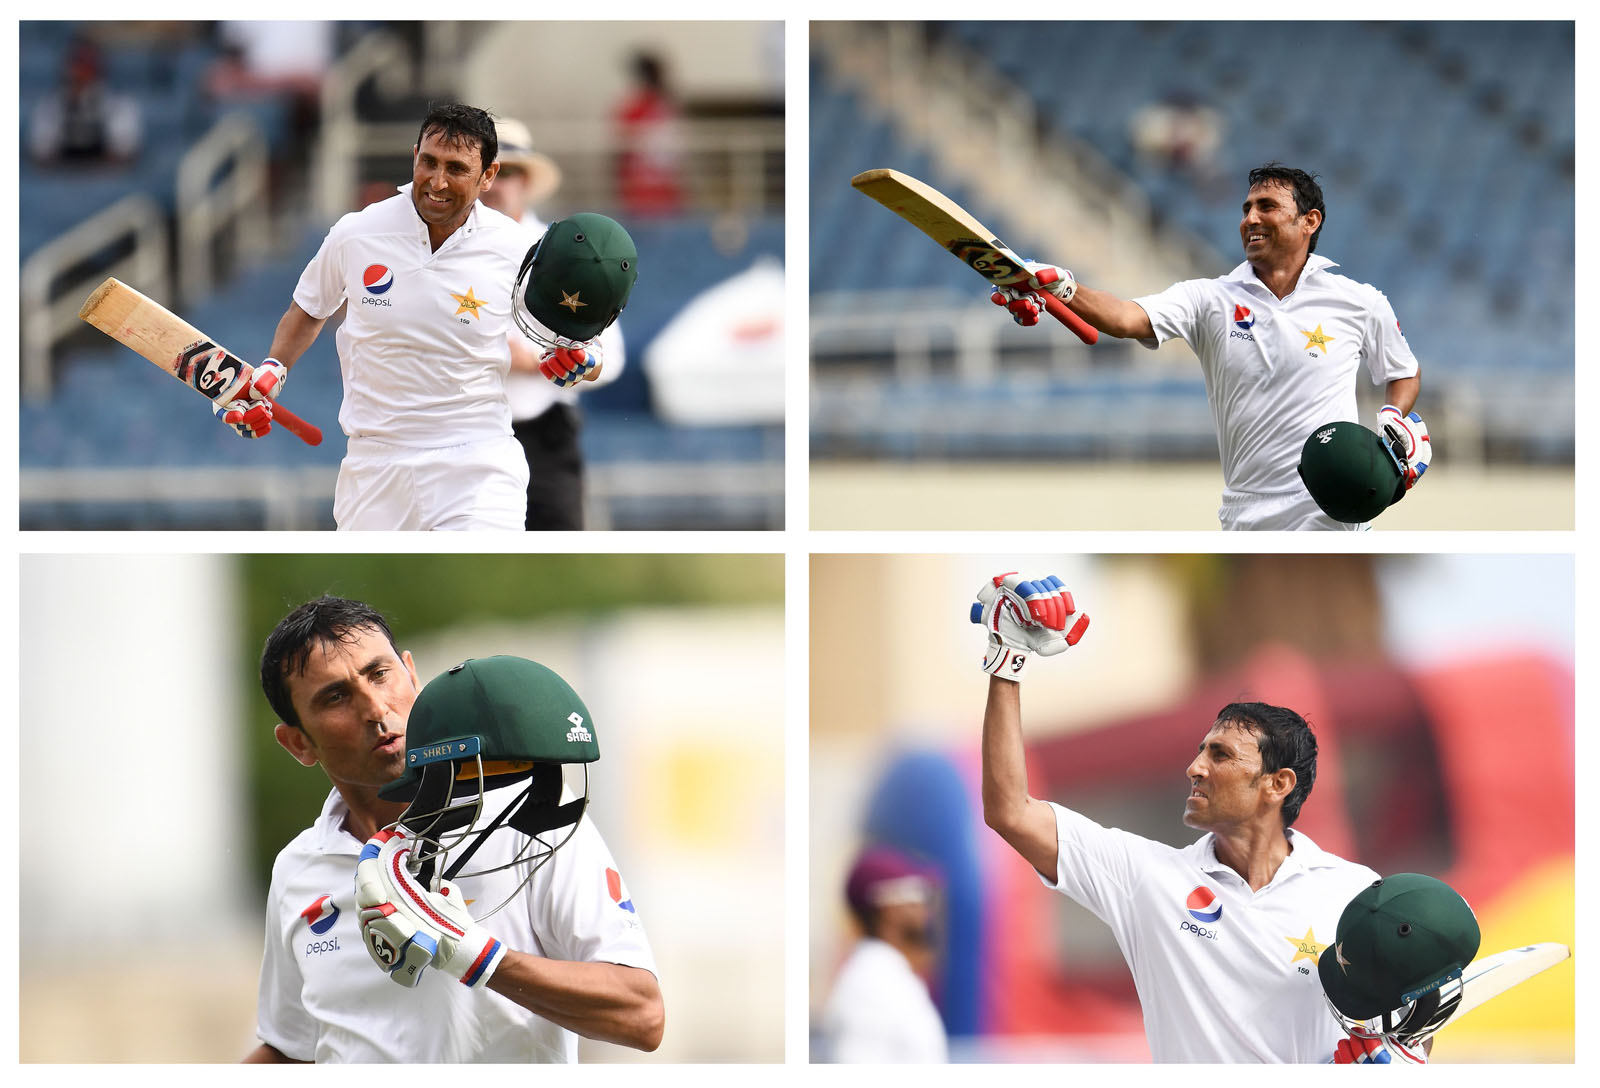 Younis Khan celebrating after reaching his 10,000th Test runs